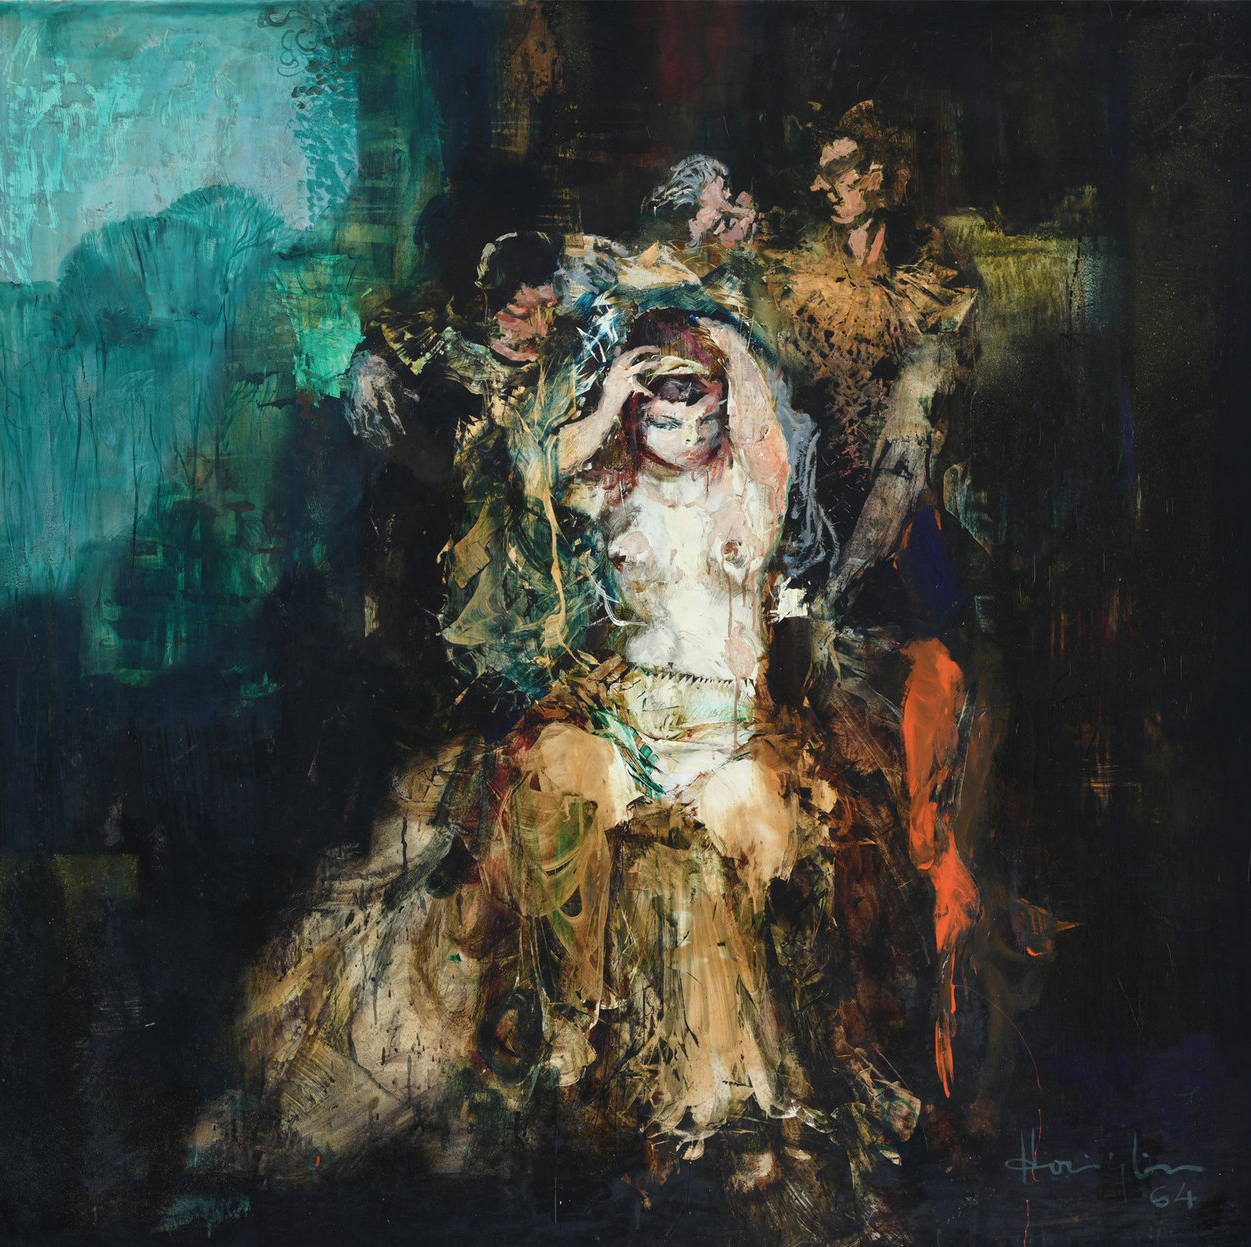 Vincent Hoisington, Untitled (A Scene from Opera), oil on board, 150 x 150 cm, 1964